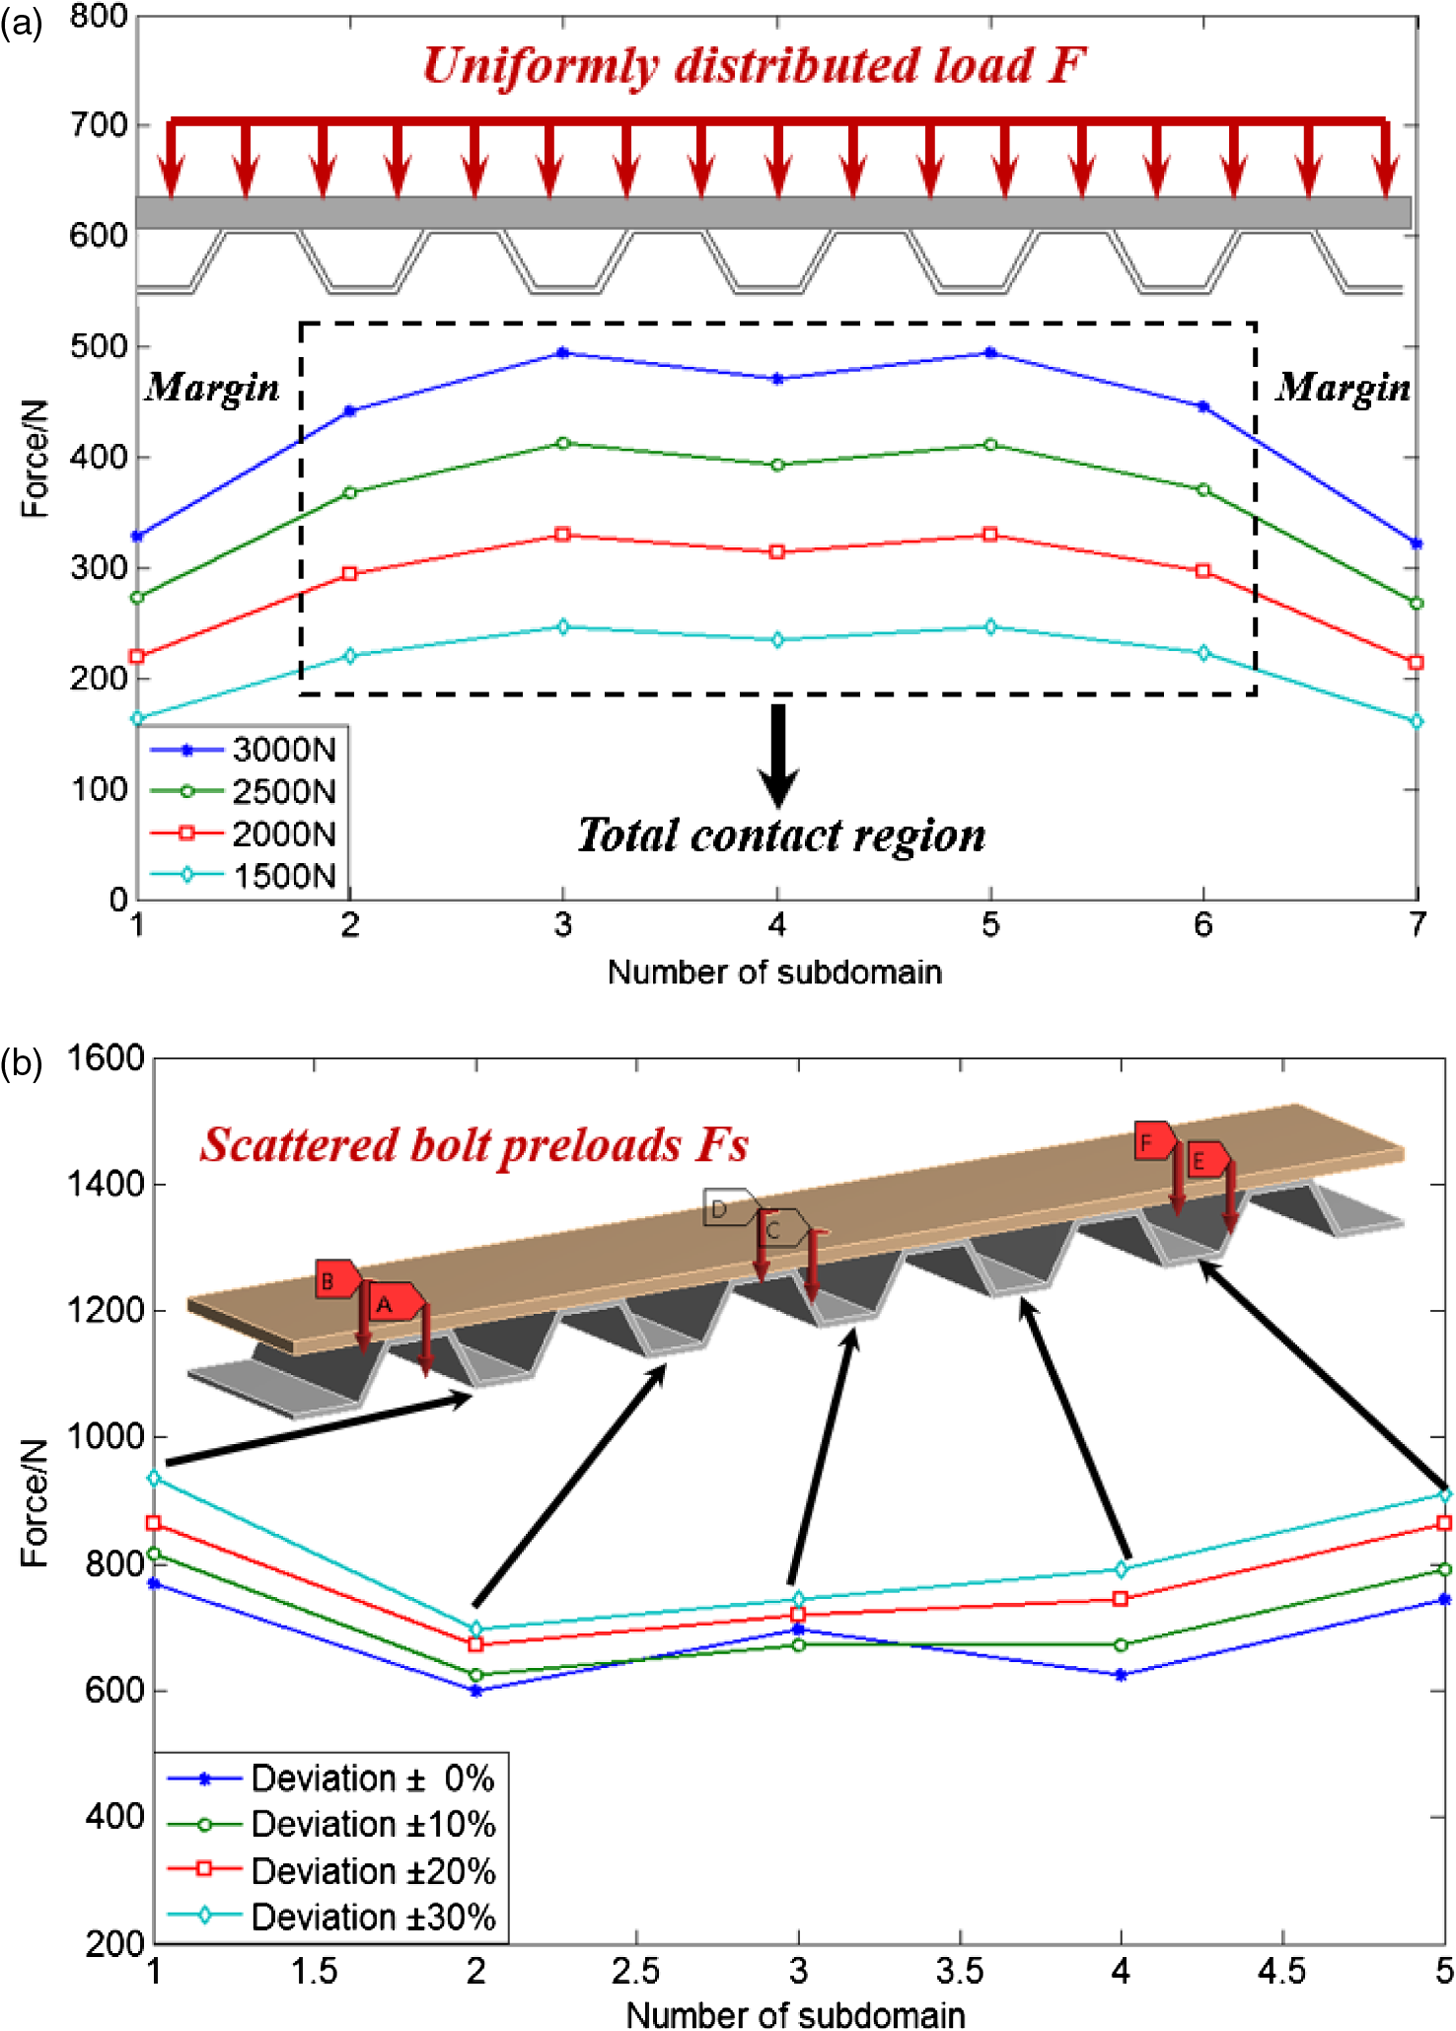 Optomechanical Analysis Of The Flexure Mounting Configuration Mechanics Shear Force And Bending Moment Diagrams Using Matlab Mechanical Properties Support A Applied Uniformly Distributed Preload B Scattered Bolt Preloads